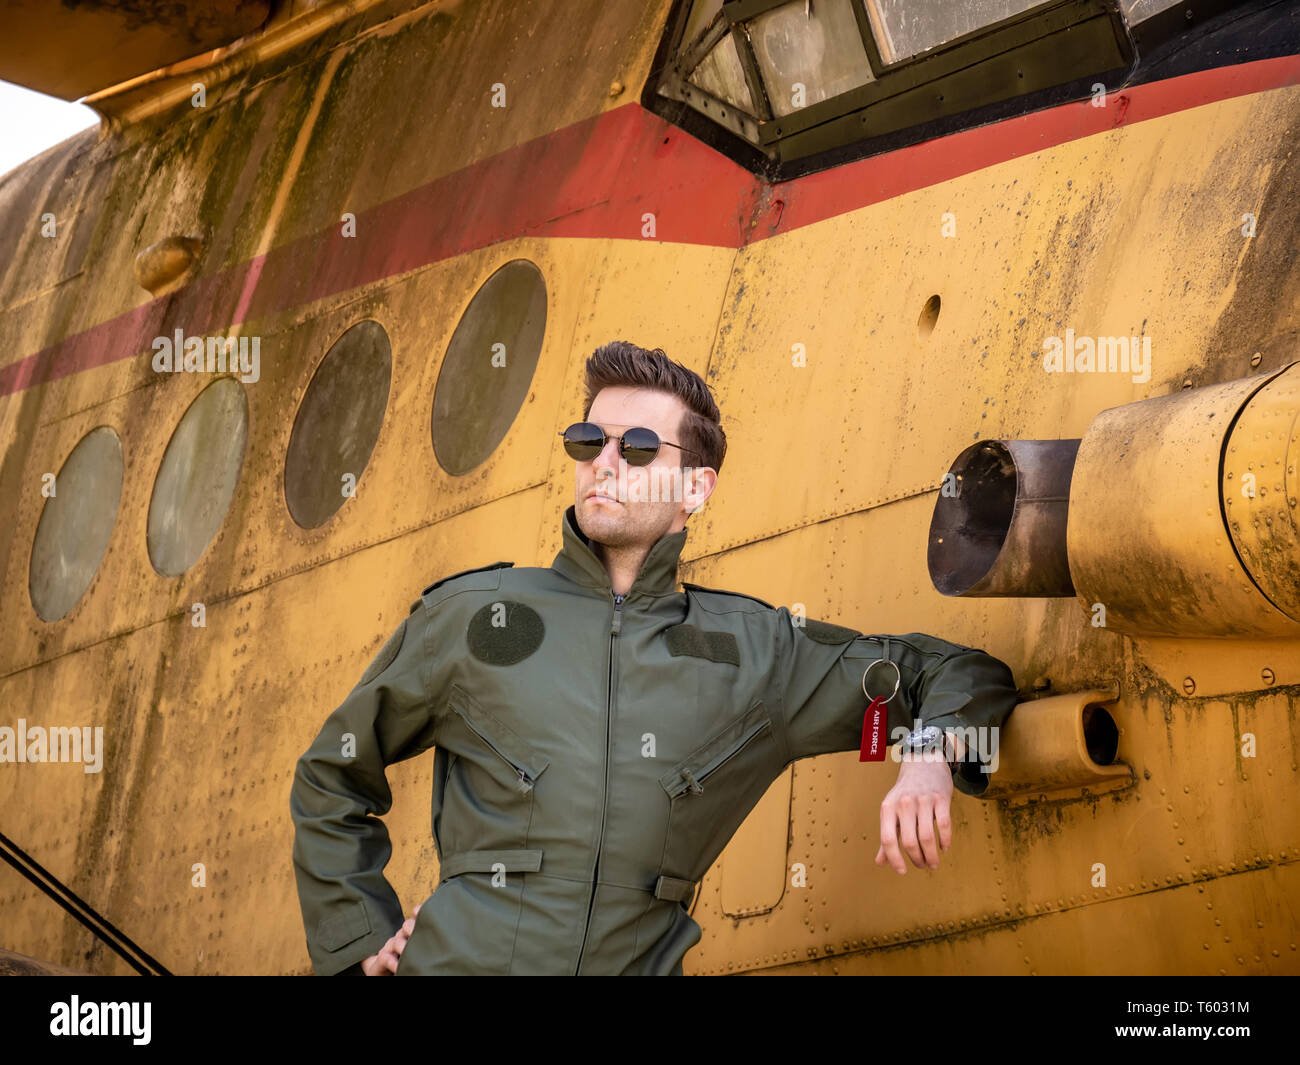 A handsome young man pilot in a green overall standing next to an old plane on a sunny day. Stock Photo